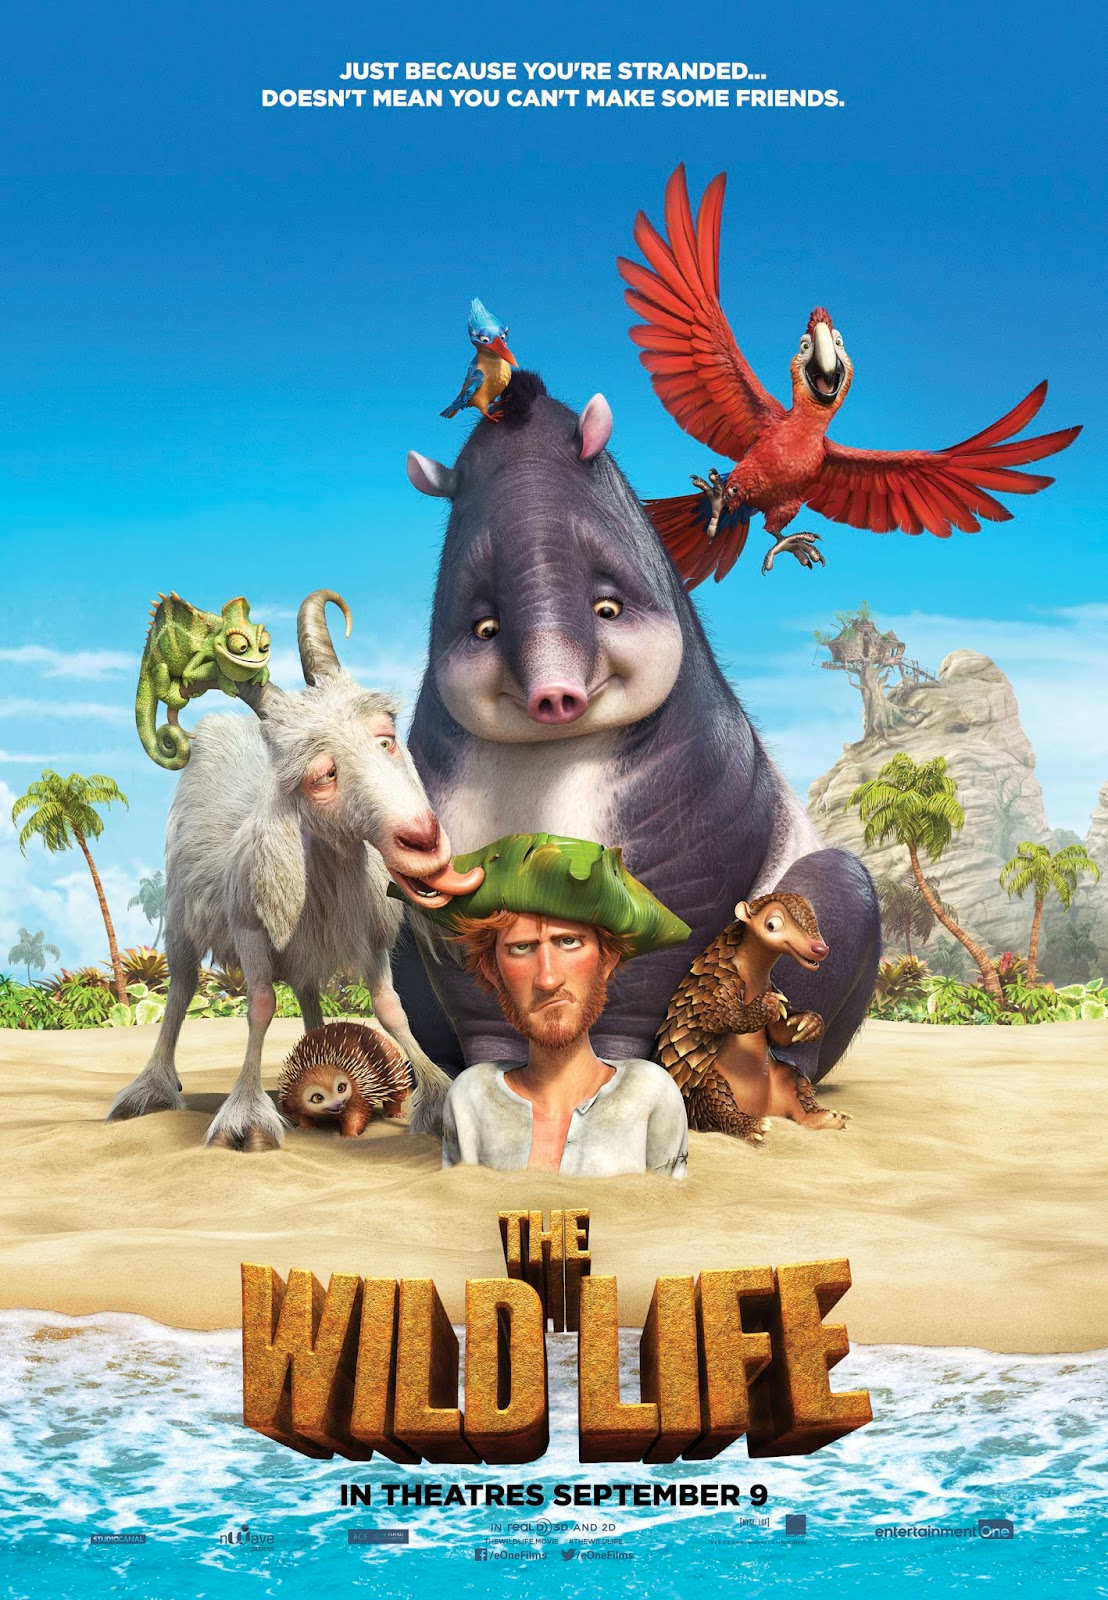 cinemablographer contest win tickets to see the wild life across